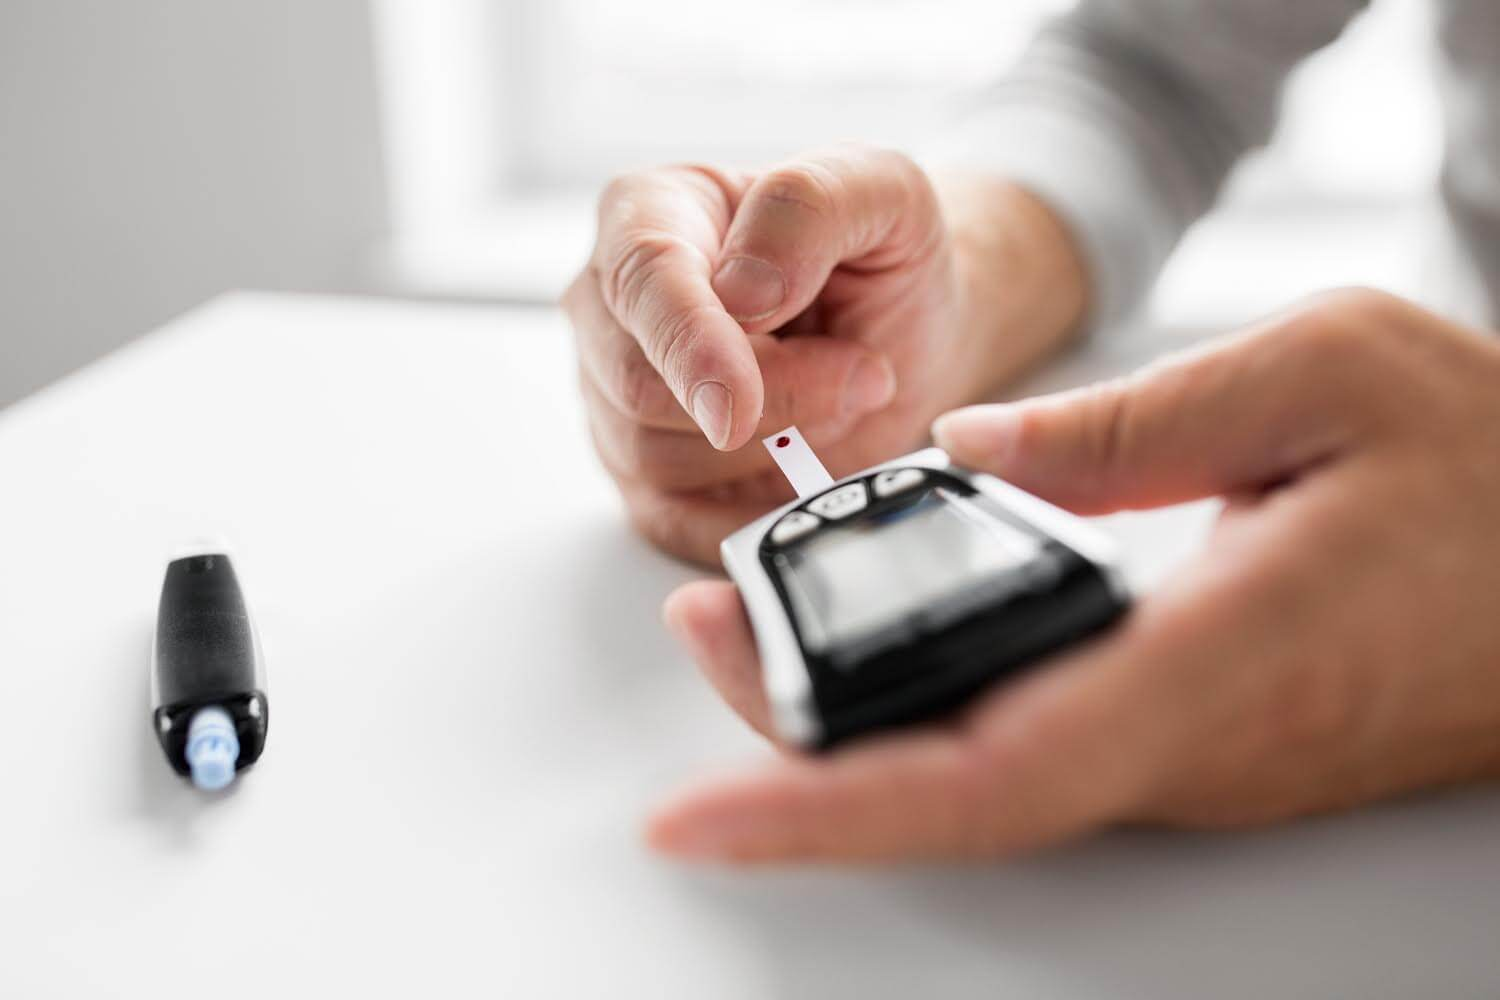 Can Chiropractic Care Help with Diabetes?